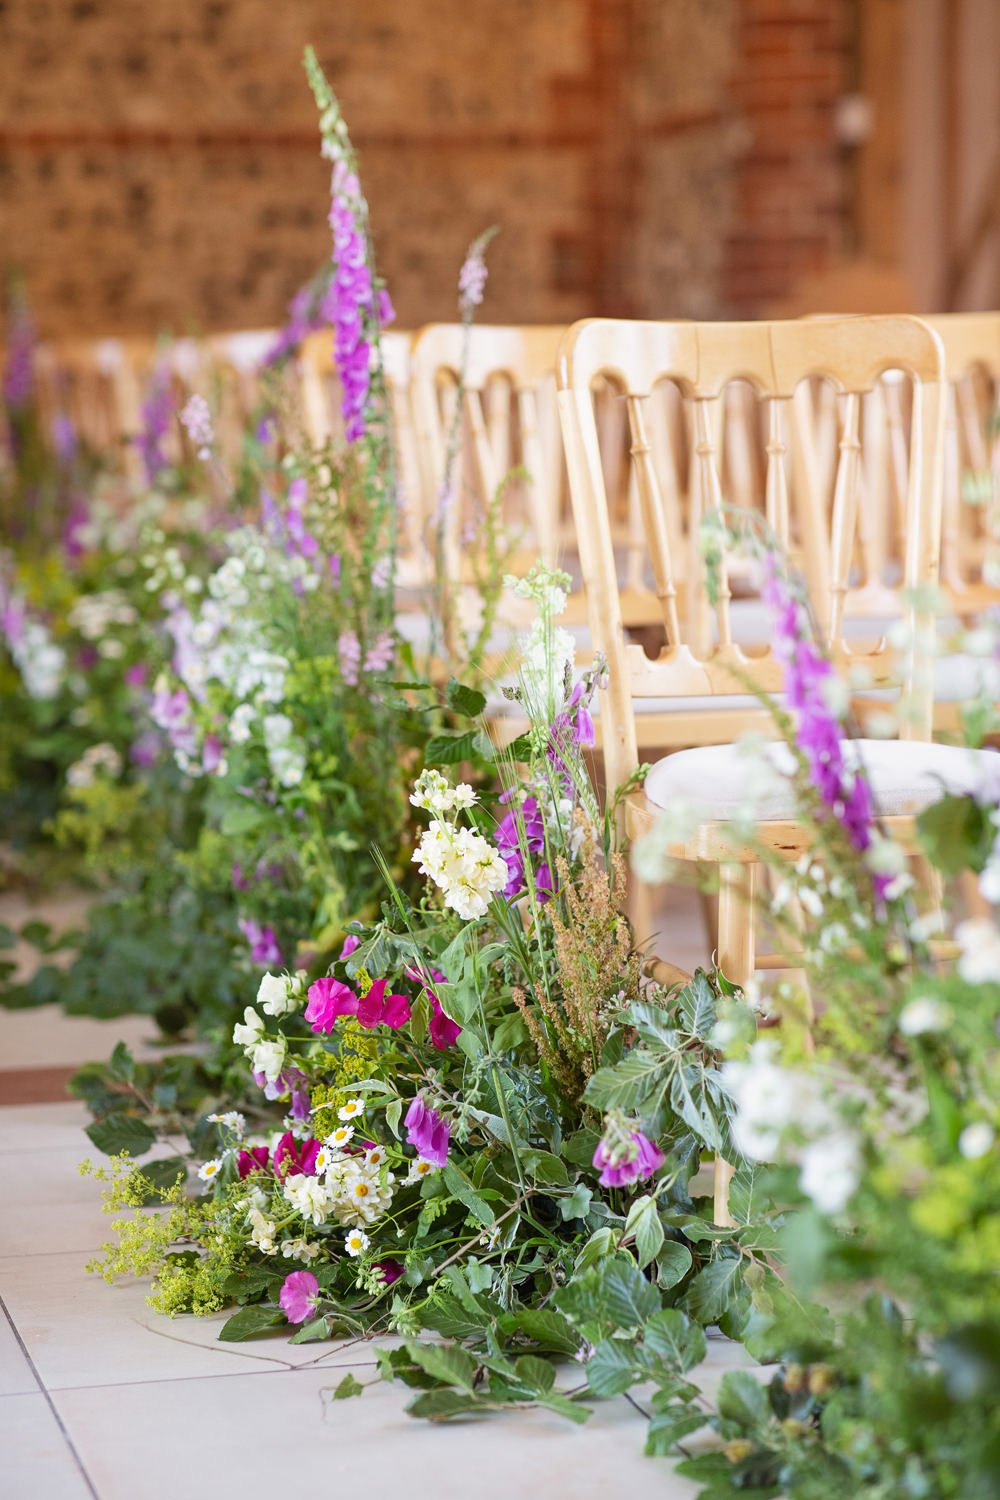 Aisle Flowers Pew End Ceremony Meadow Pretty Wild Flowers Rustic Tipi Wedding Cotton Candy Weddings